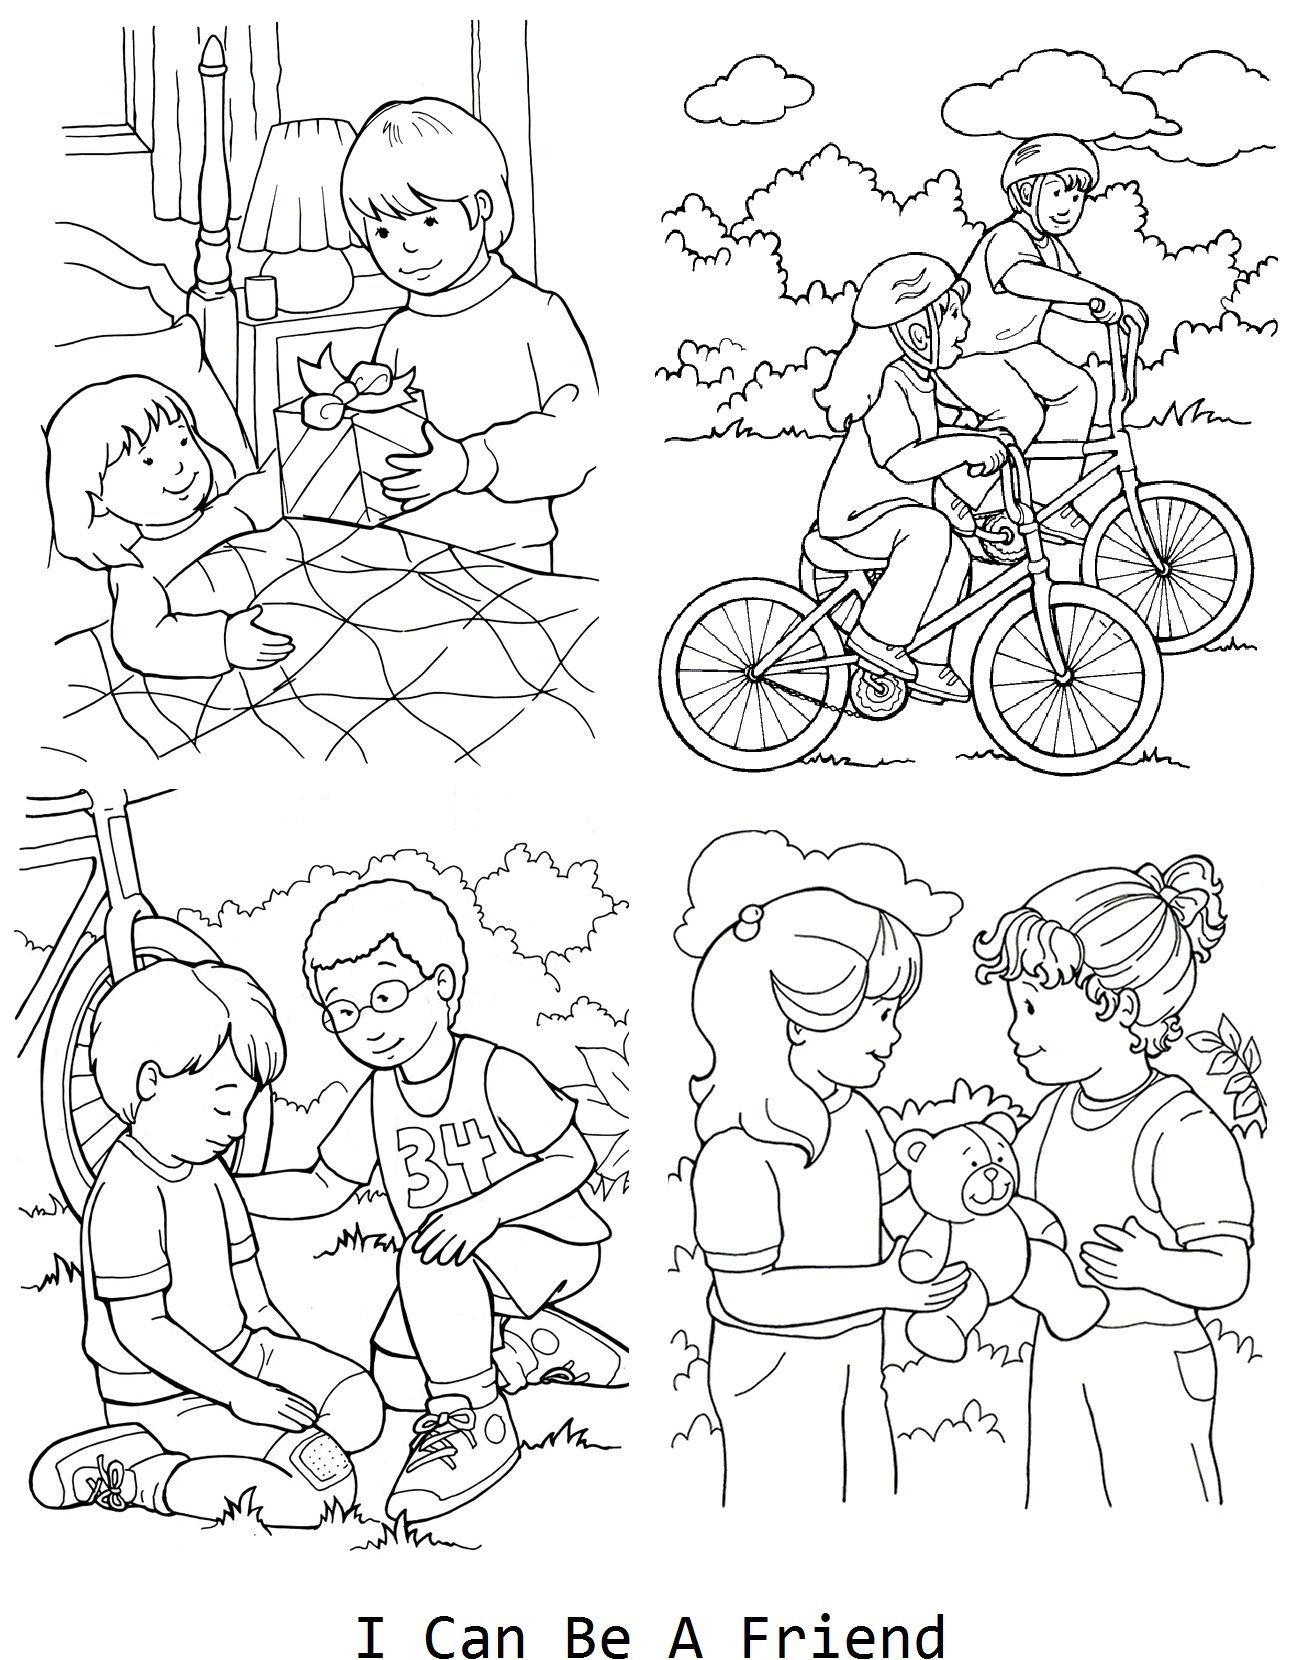 I can be a friend coloring page for lesson 33 LDS Primary